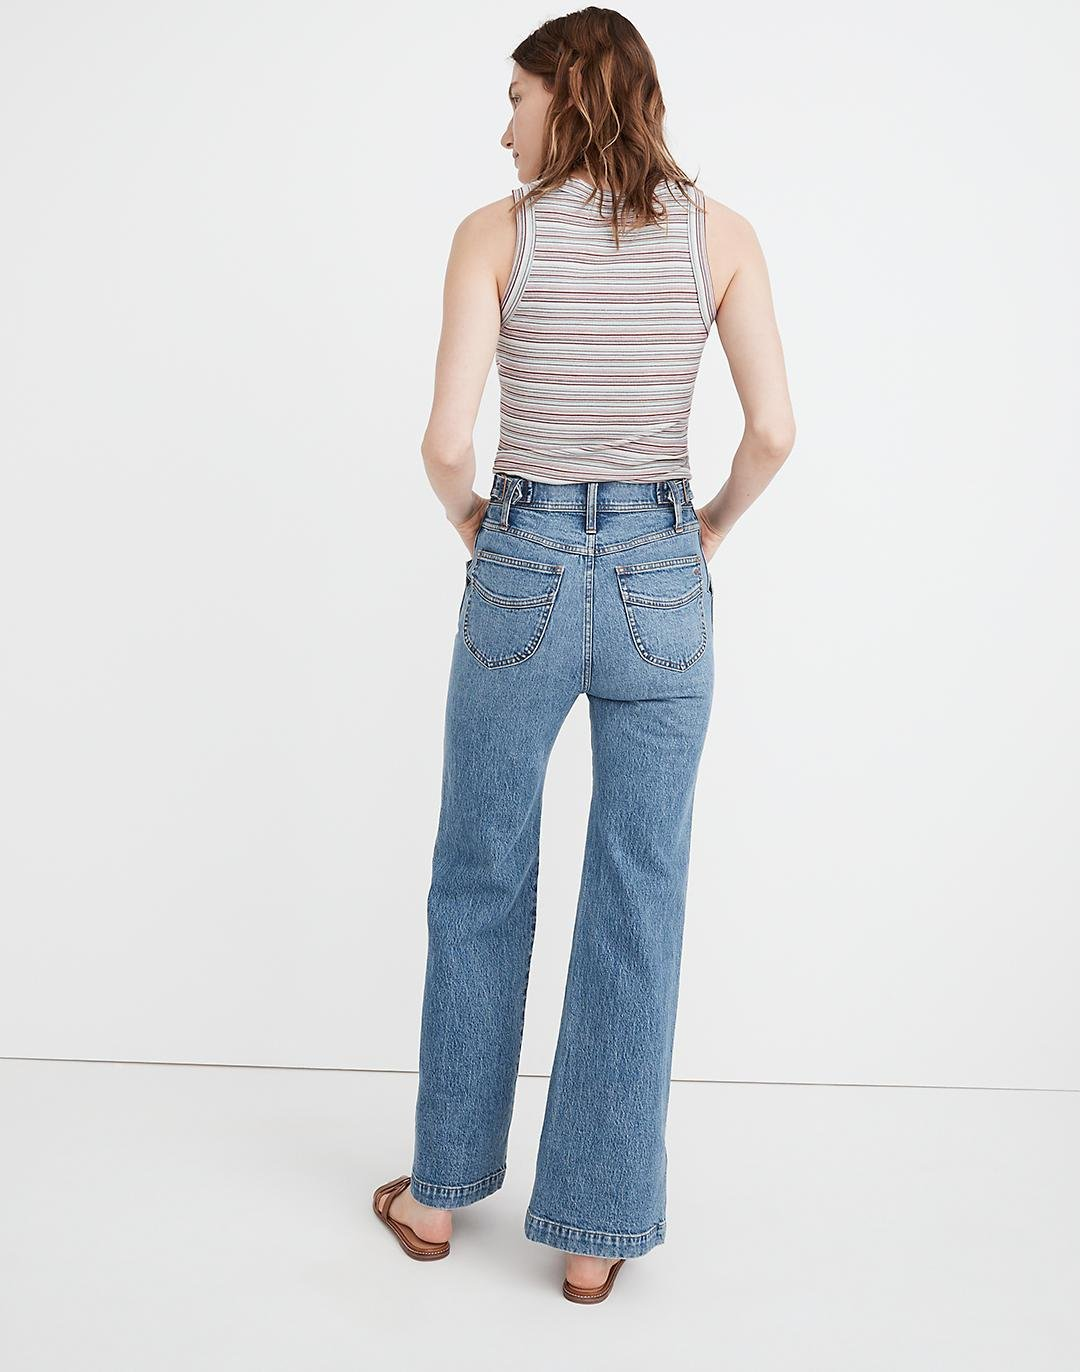 """11"""" High-Rise Flare Jeans in Erickson Wash: Stitched-Pocket Edition 2"""